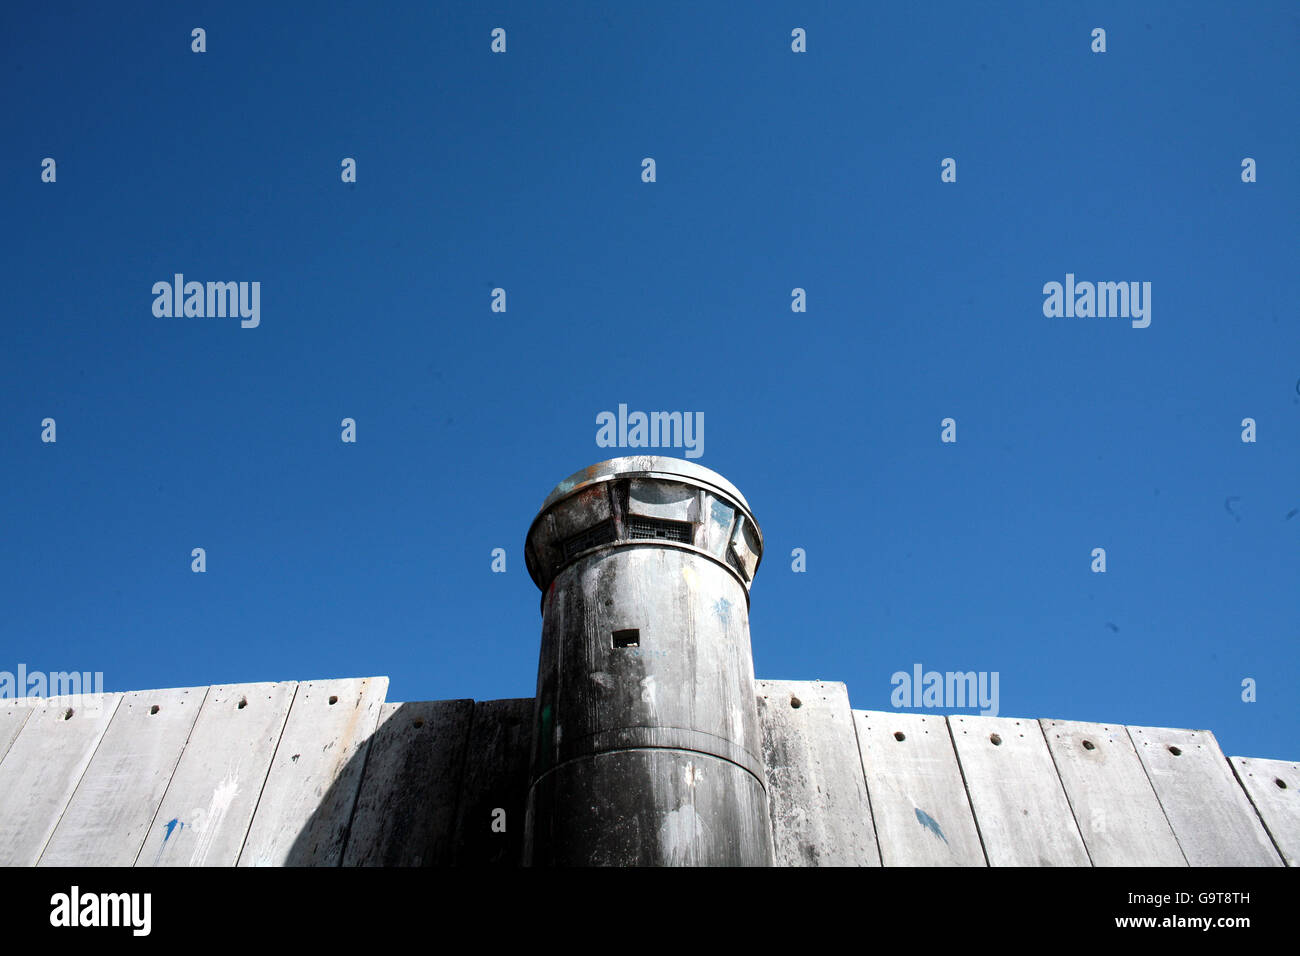 Mid East travel pictures - Stock Image